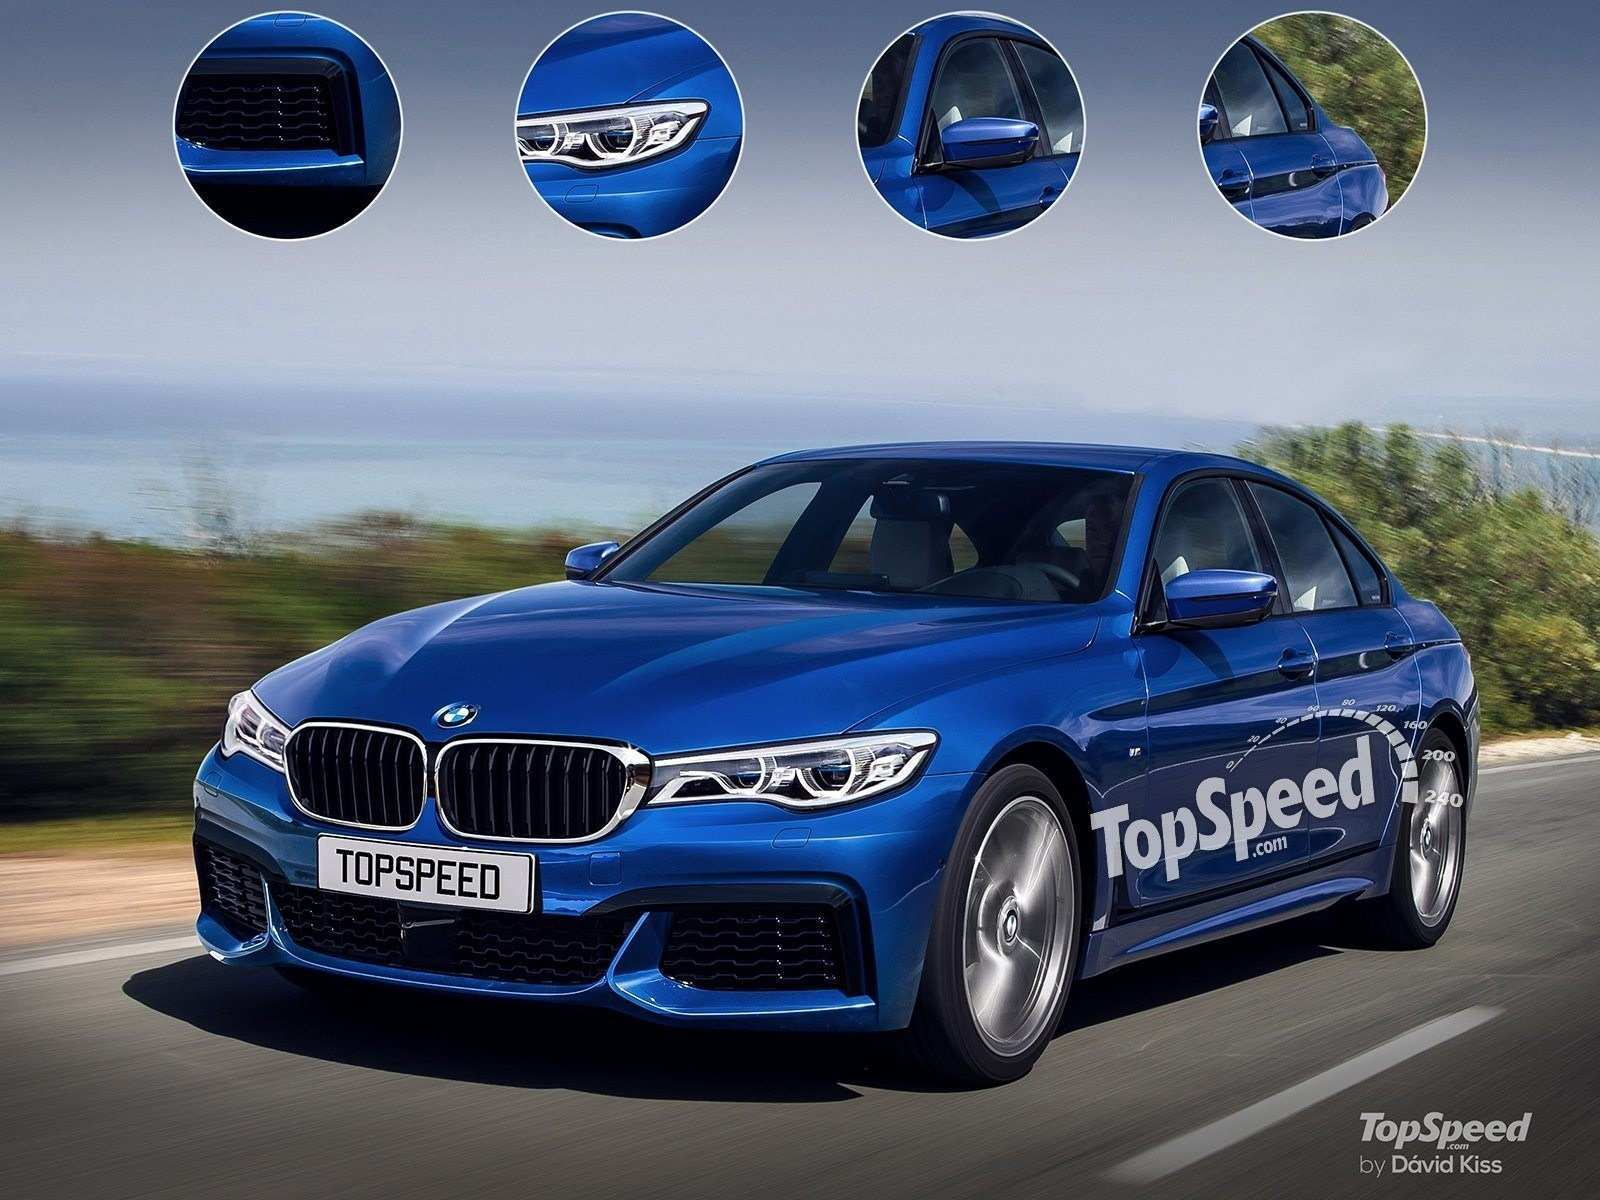 69 Great Upcoming Bmw 2019 Concept Redesign And Review Performance and New Engine with Upcoming Bmw 2019 Concept Redesign And Review